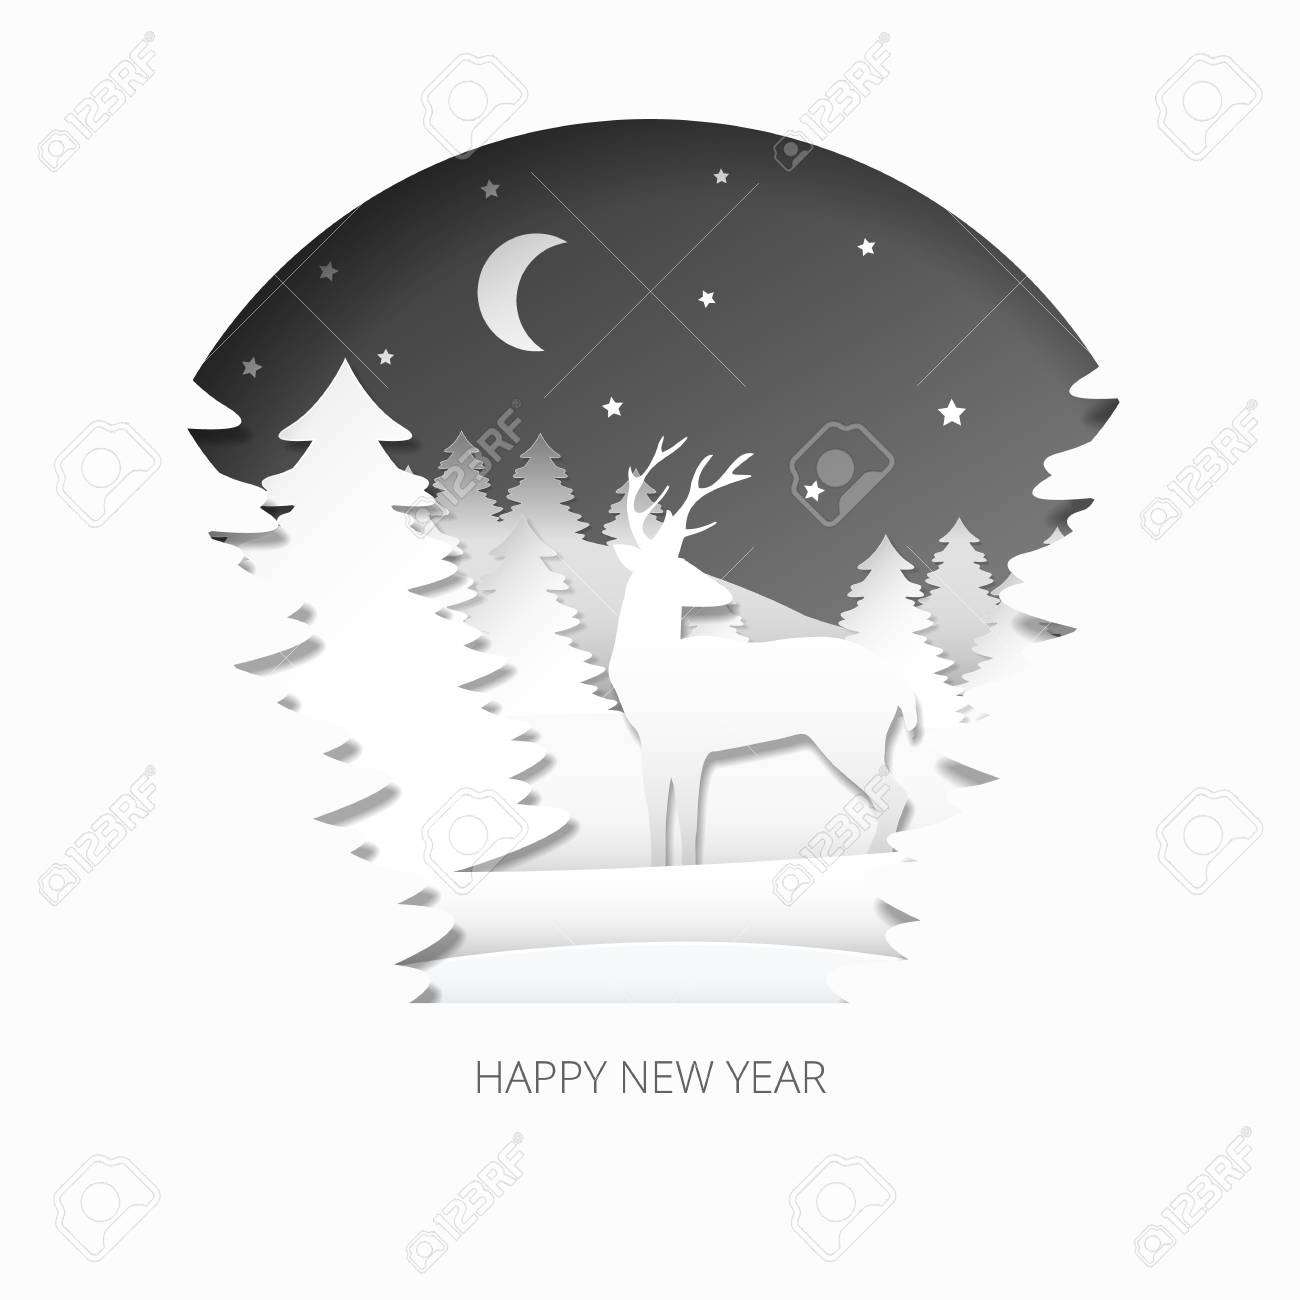 Happy new year 3d abstract paper cut illlustration of christmas happy new year 3d abstract paper cut illlustration of christmas tree deer moon and kristyandbryce Image collections